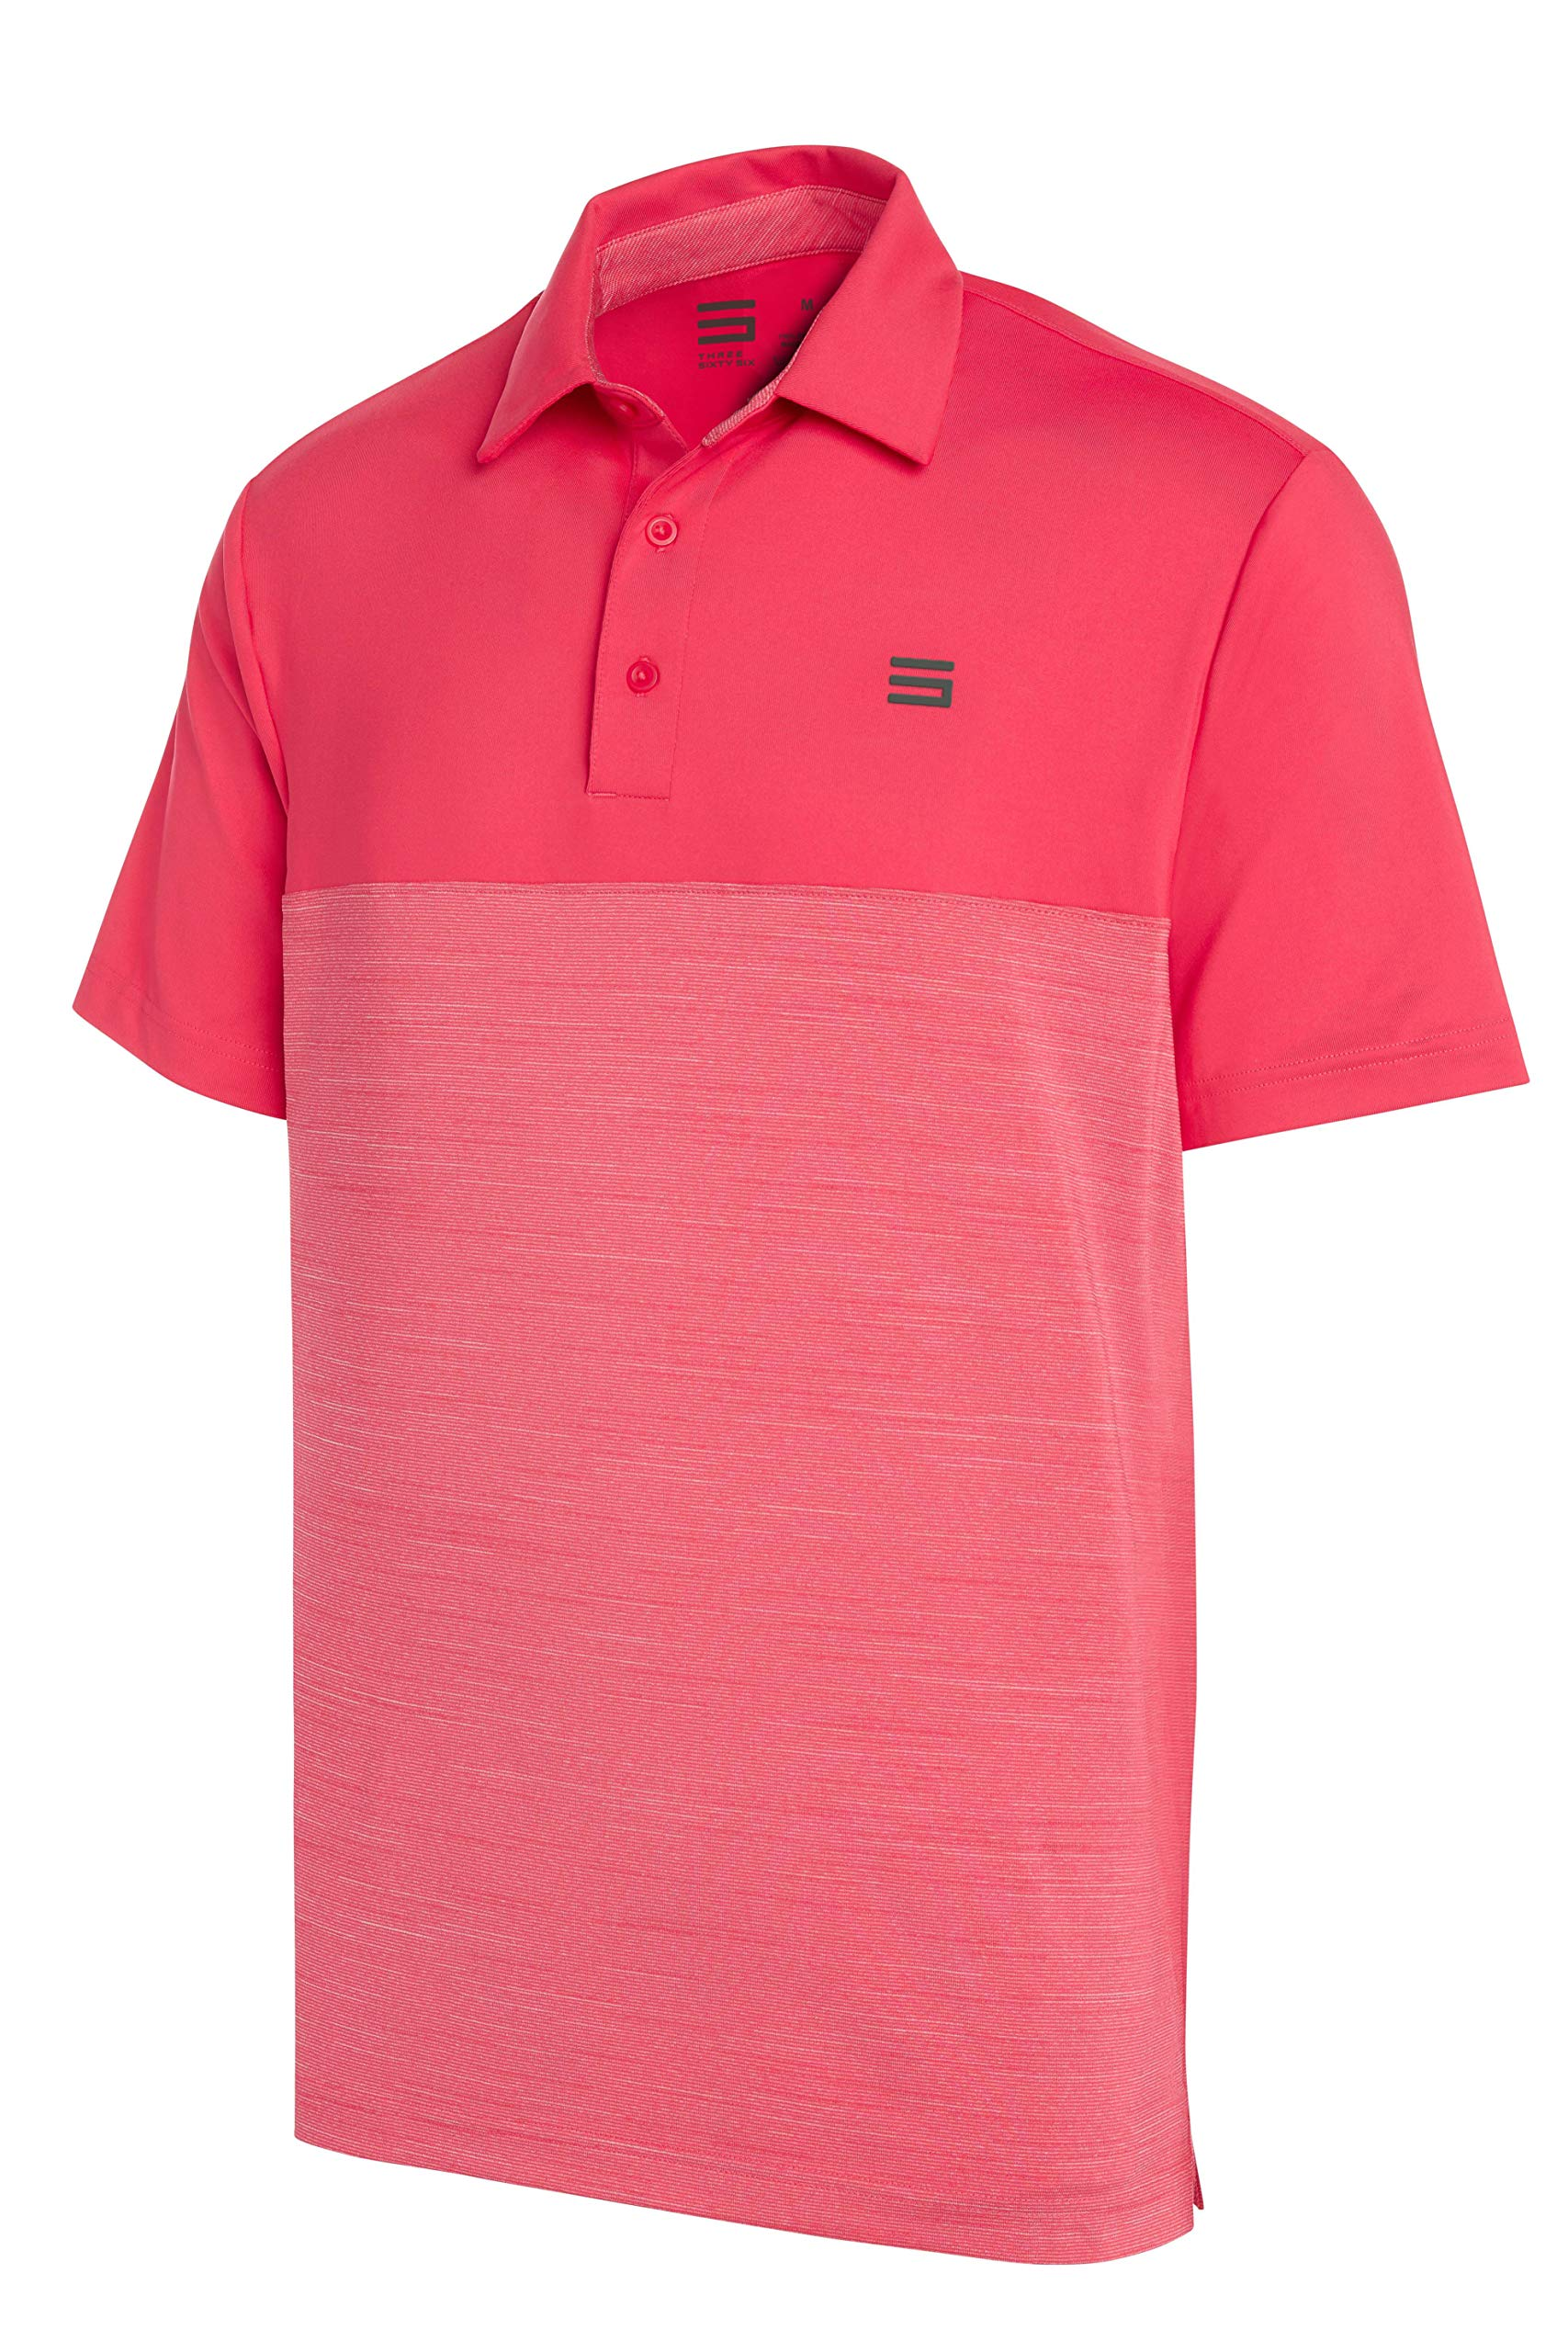 Three Sixty Six Dri-Fit Golf Shirts for Men - Moisture Wicking Short-Sleeve Polo Shirt Fire Red by Three Sixty Six